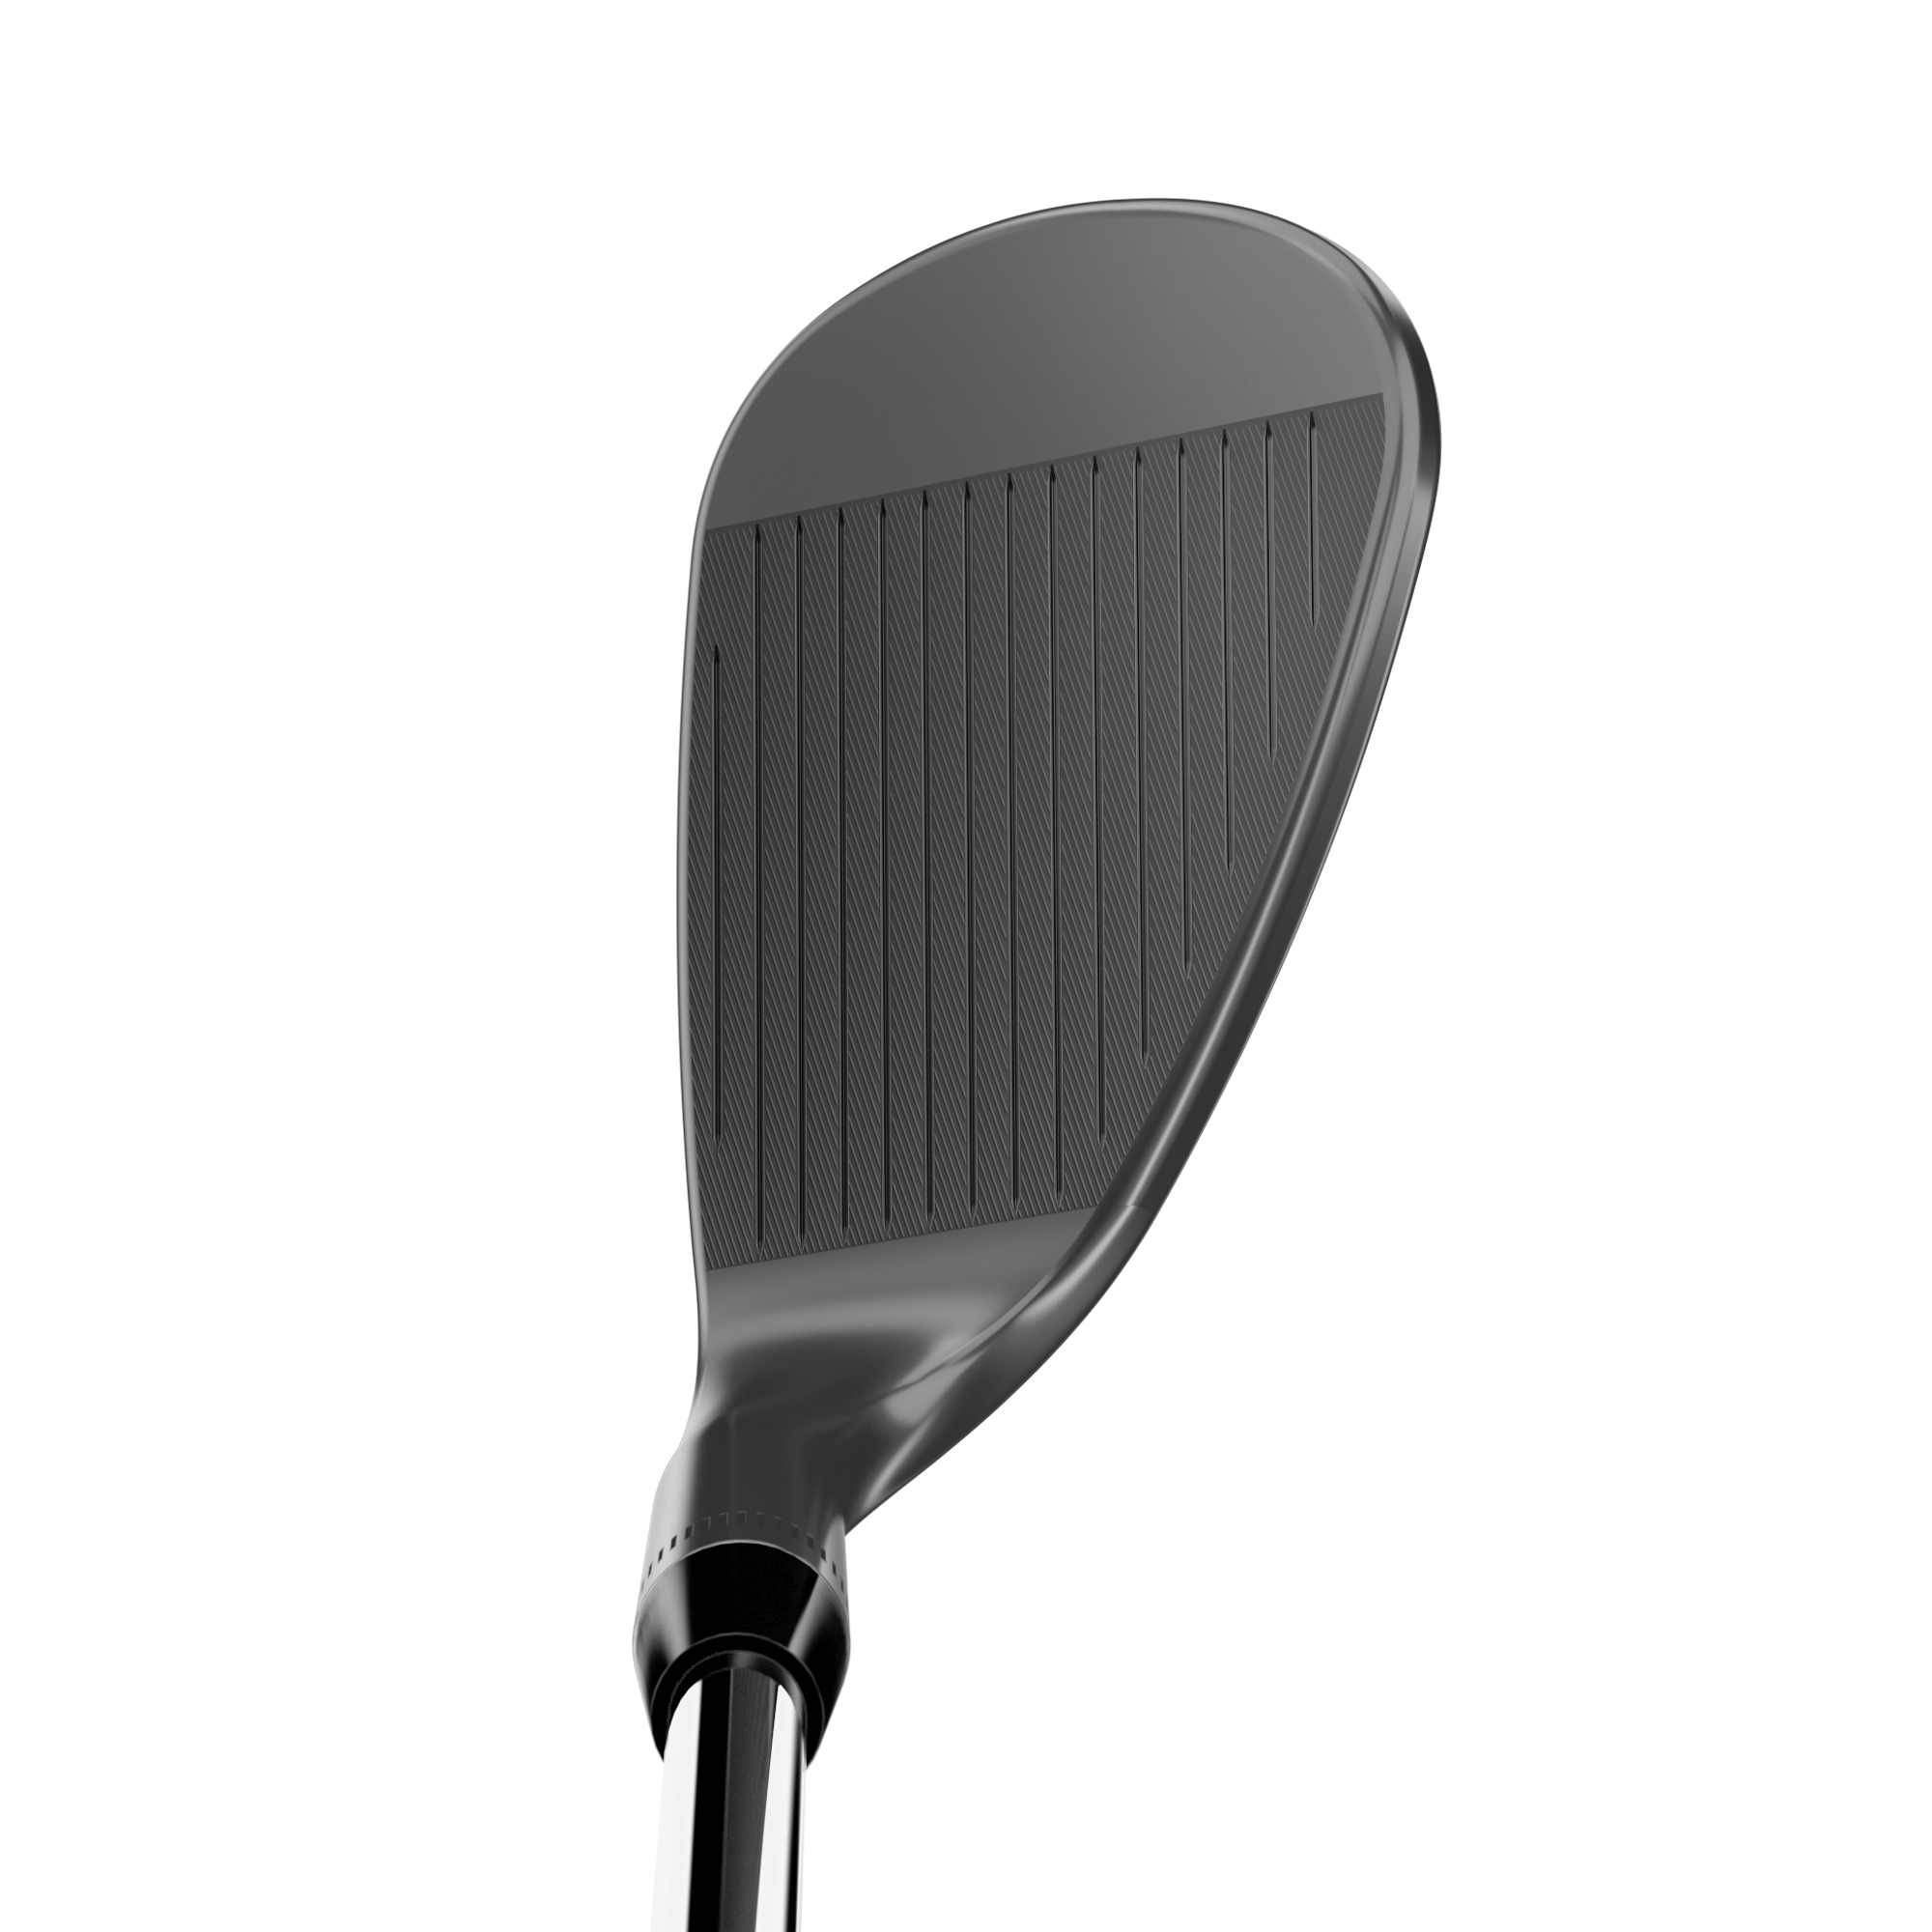 JAWS MD5 Tour Grey Wedges - View 2